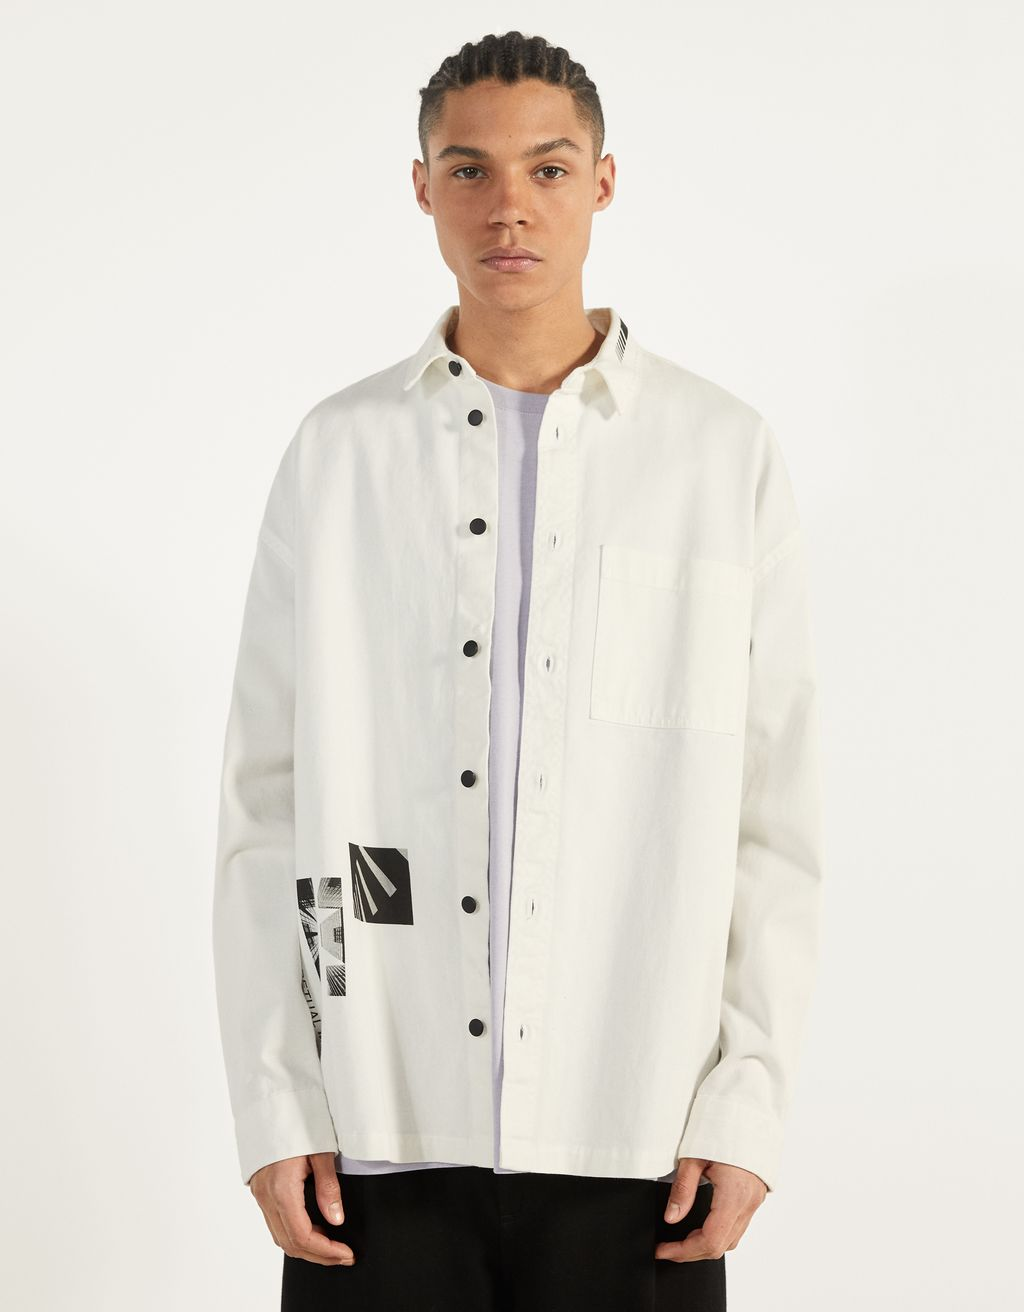 Overshirt with print